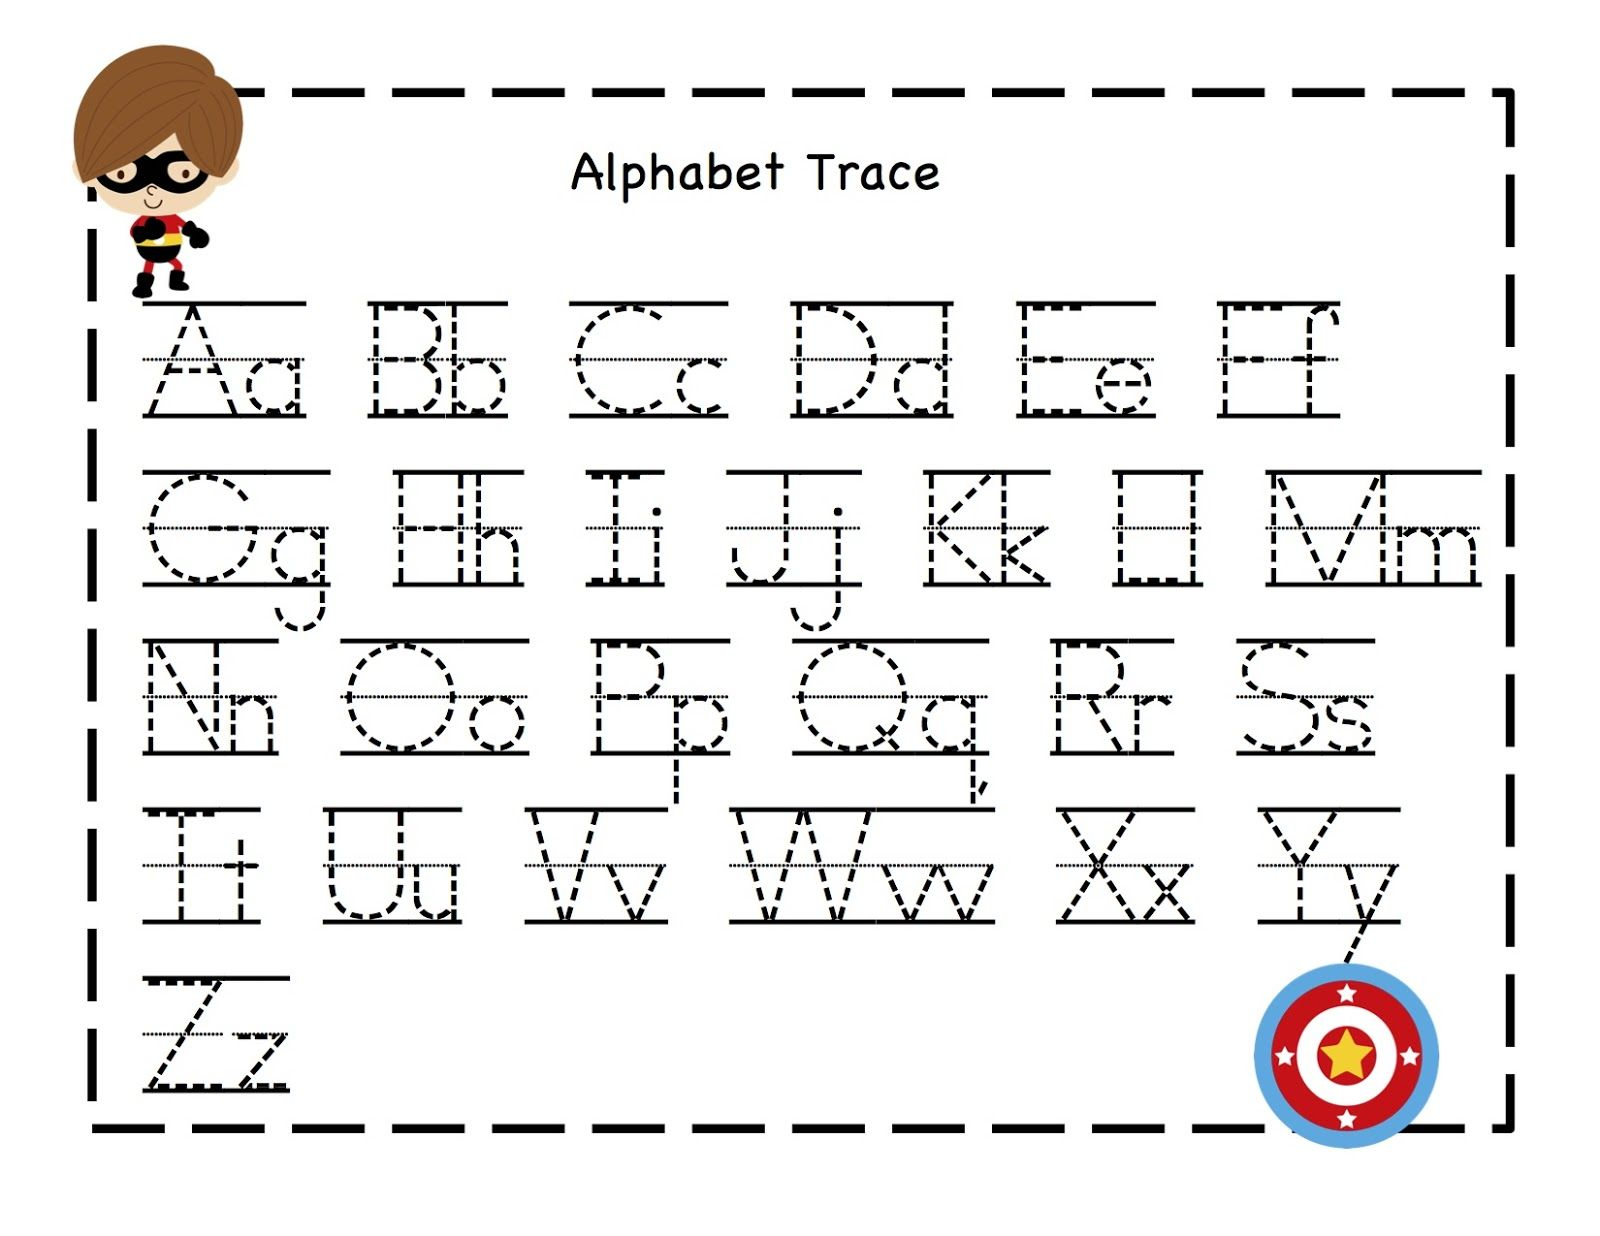 worksheet Abc Worksheets For Pre-k abc tracing sheets for preschool kids kiddo shelter worksheets